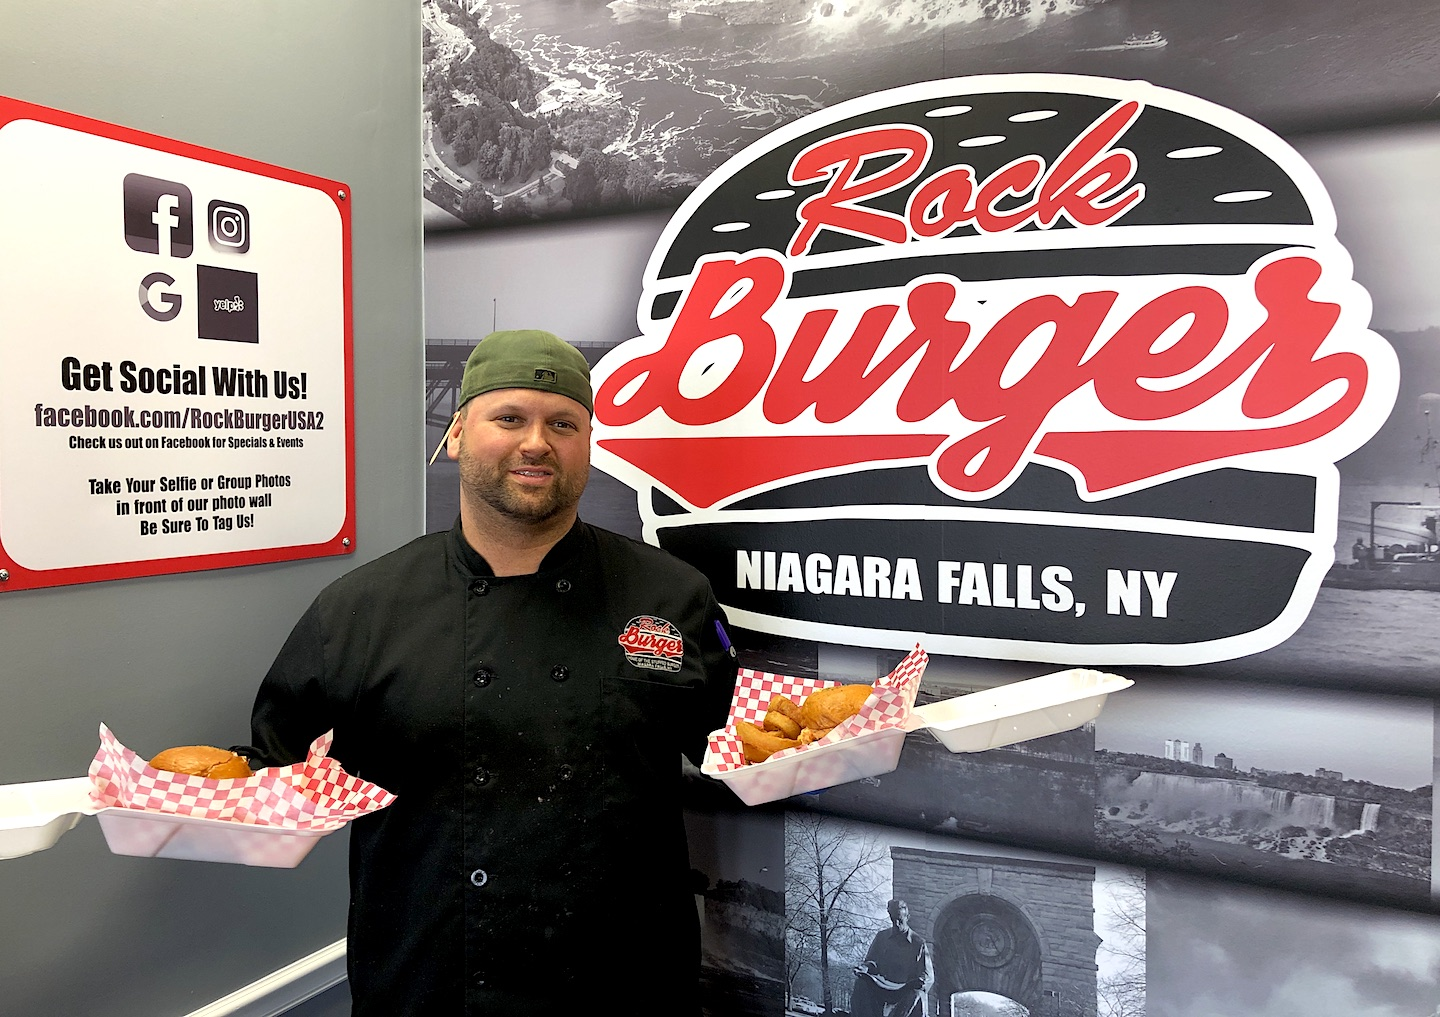 Jason Lizardo poses with some of his Rock Burger items, which also are shown below.